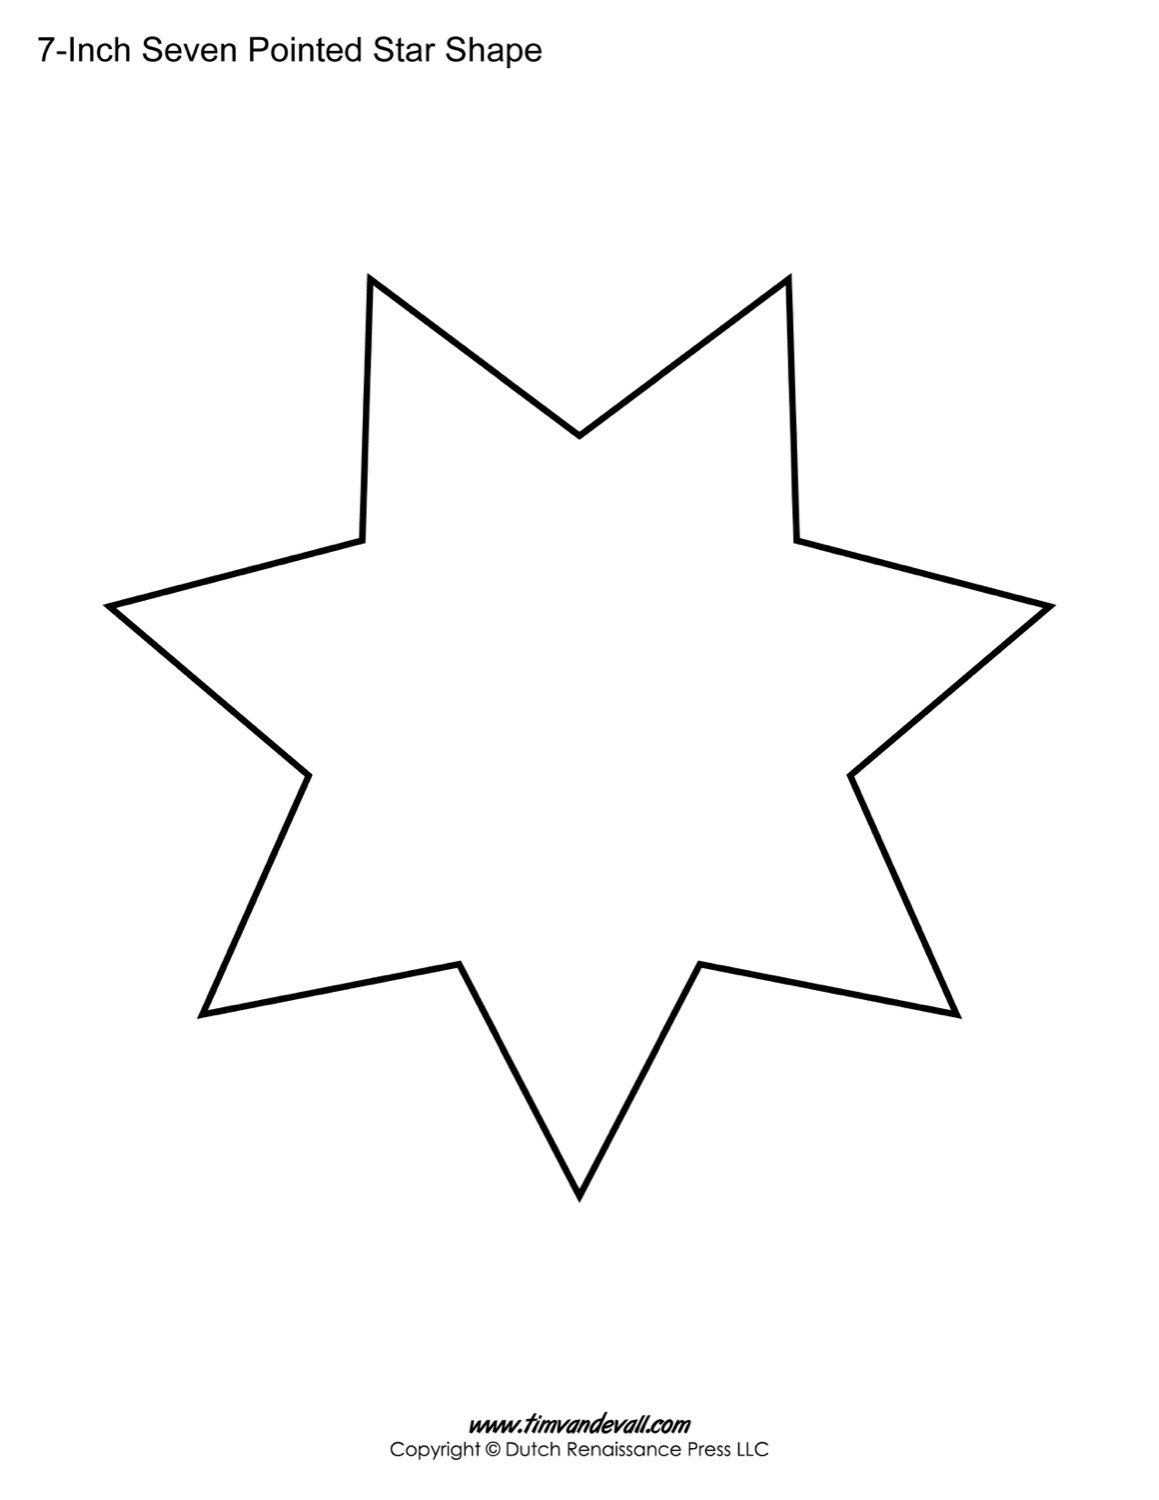 Seven Pointed Star Shape Templates